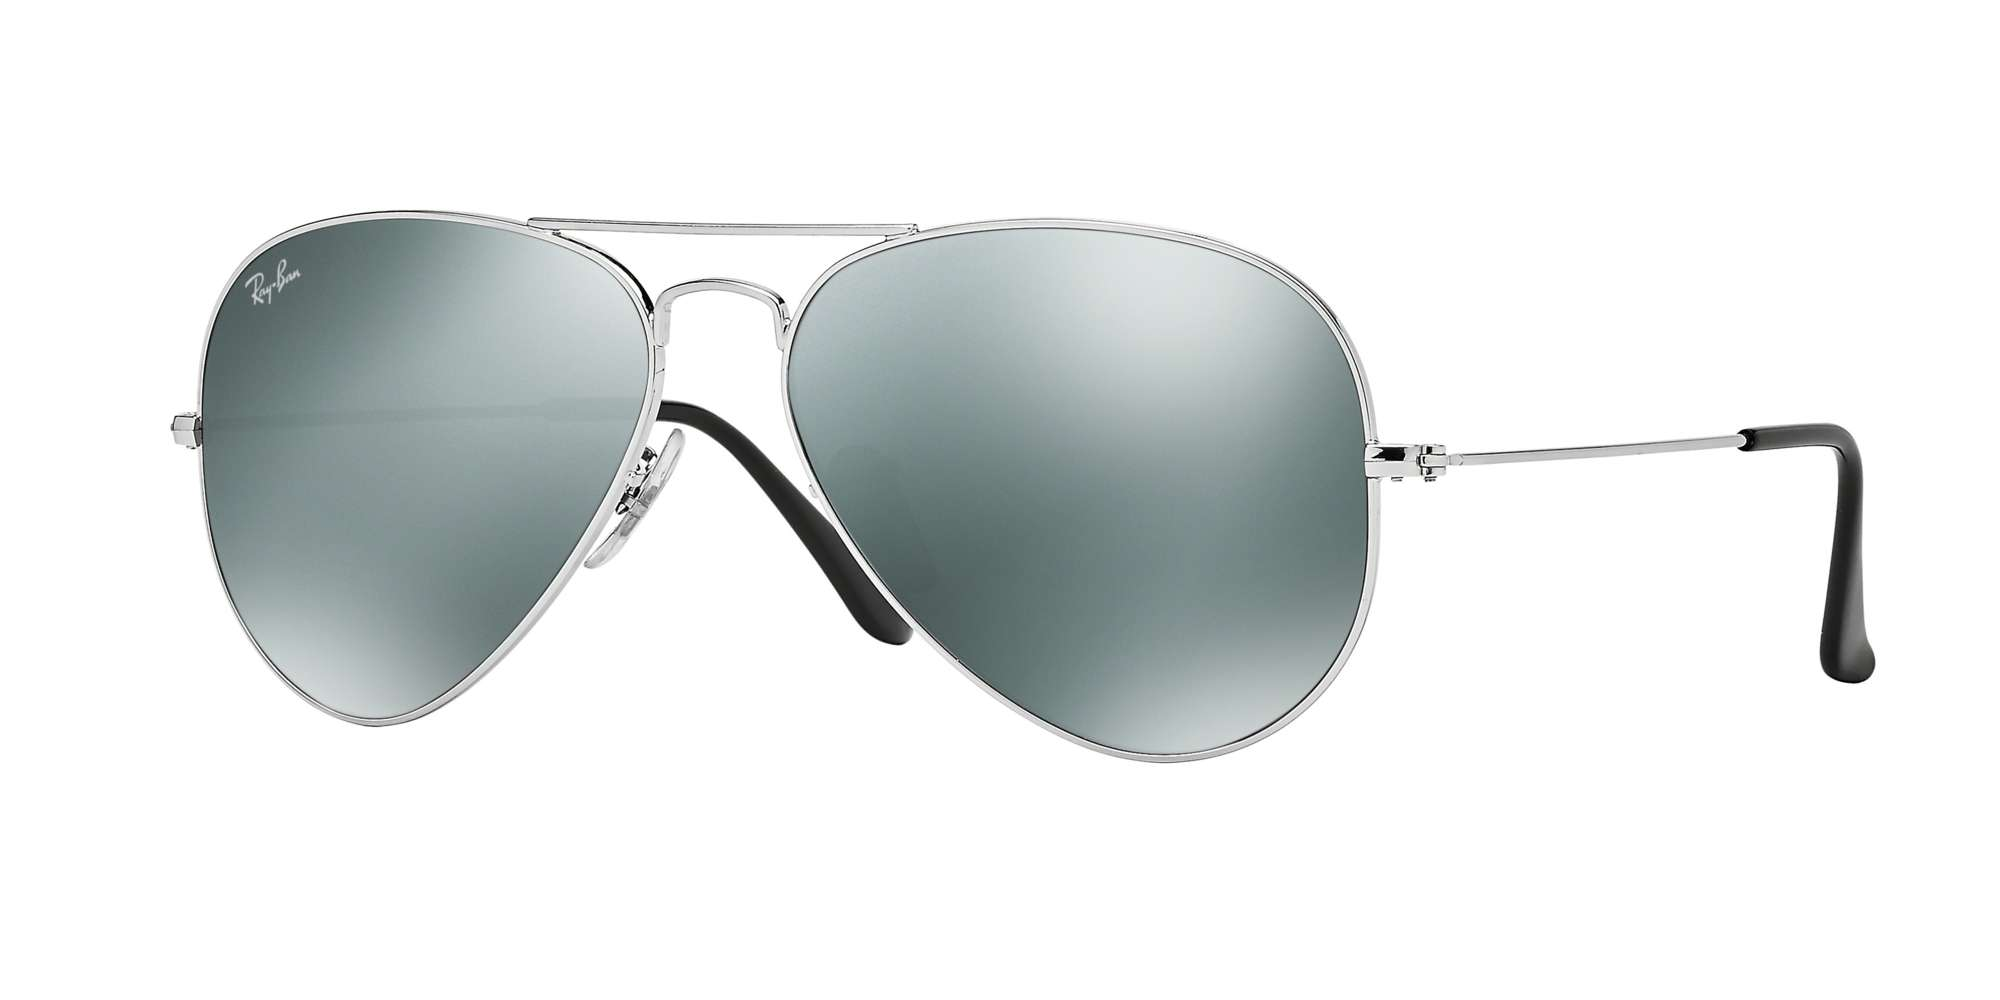 SILVER / CRYSTAL GREY MIRROR lenses